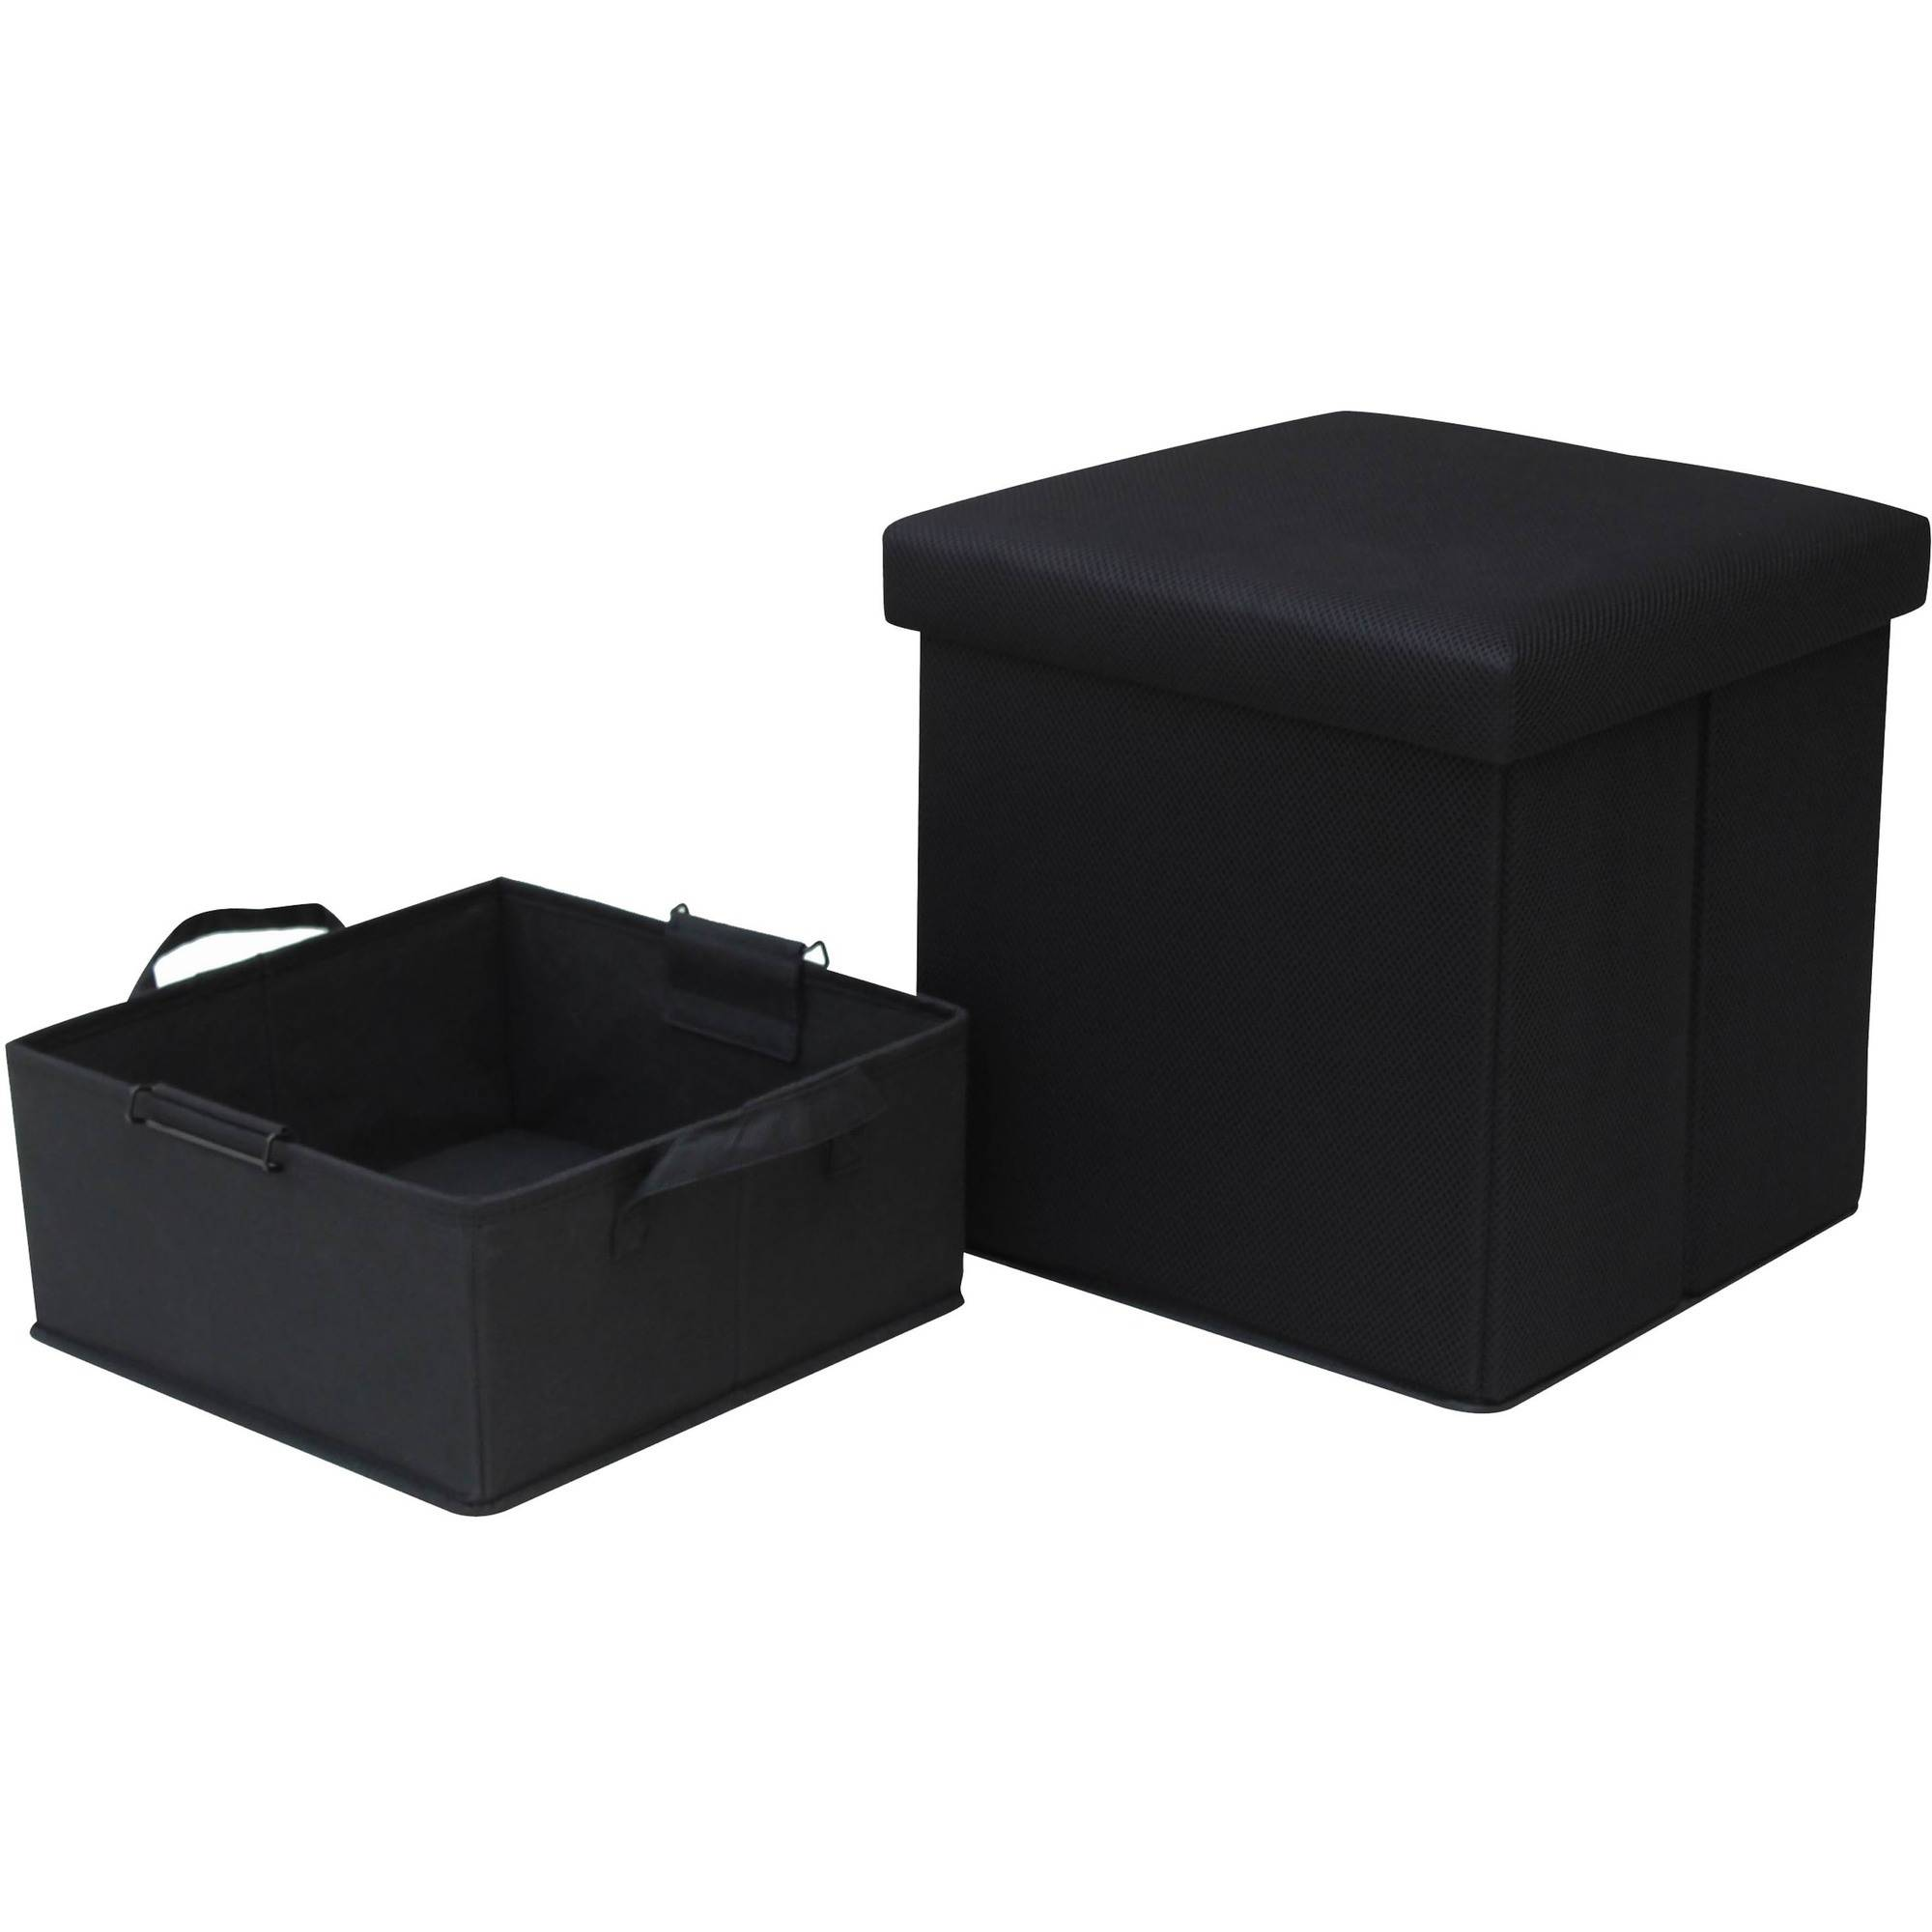 Mainstays Collapsible Storage Ottoman with Removable Bin Walmartcom